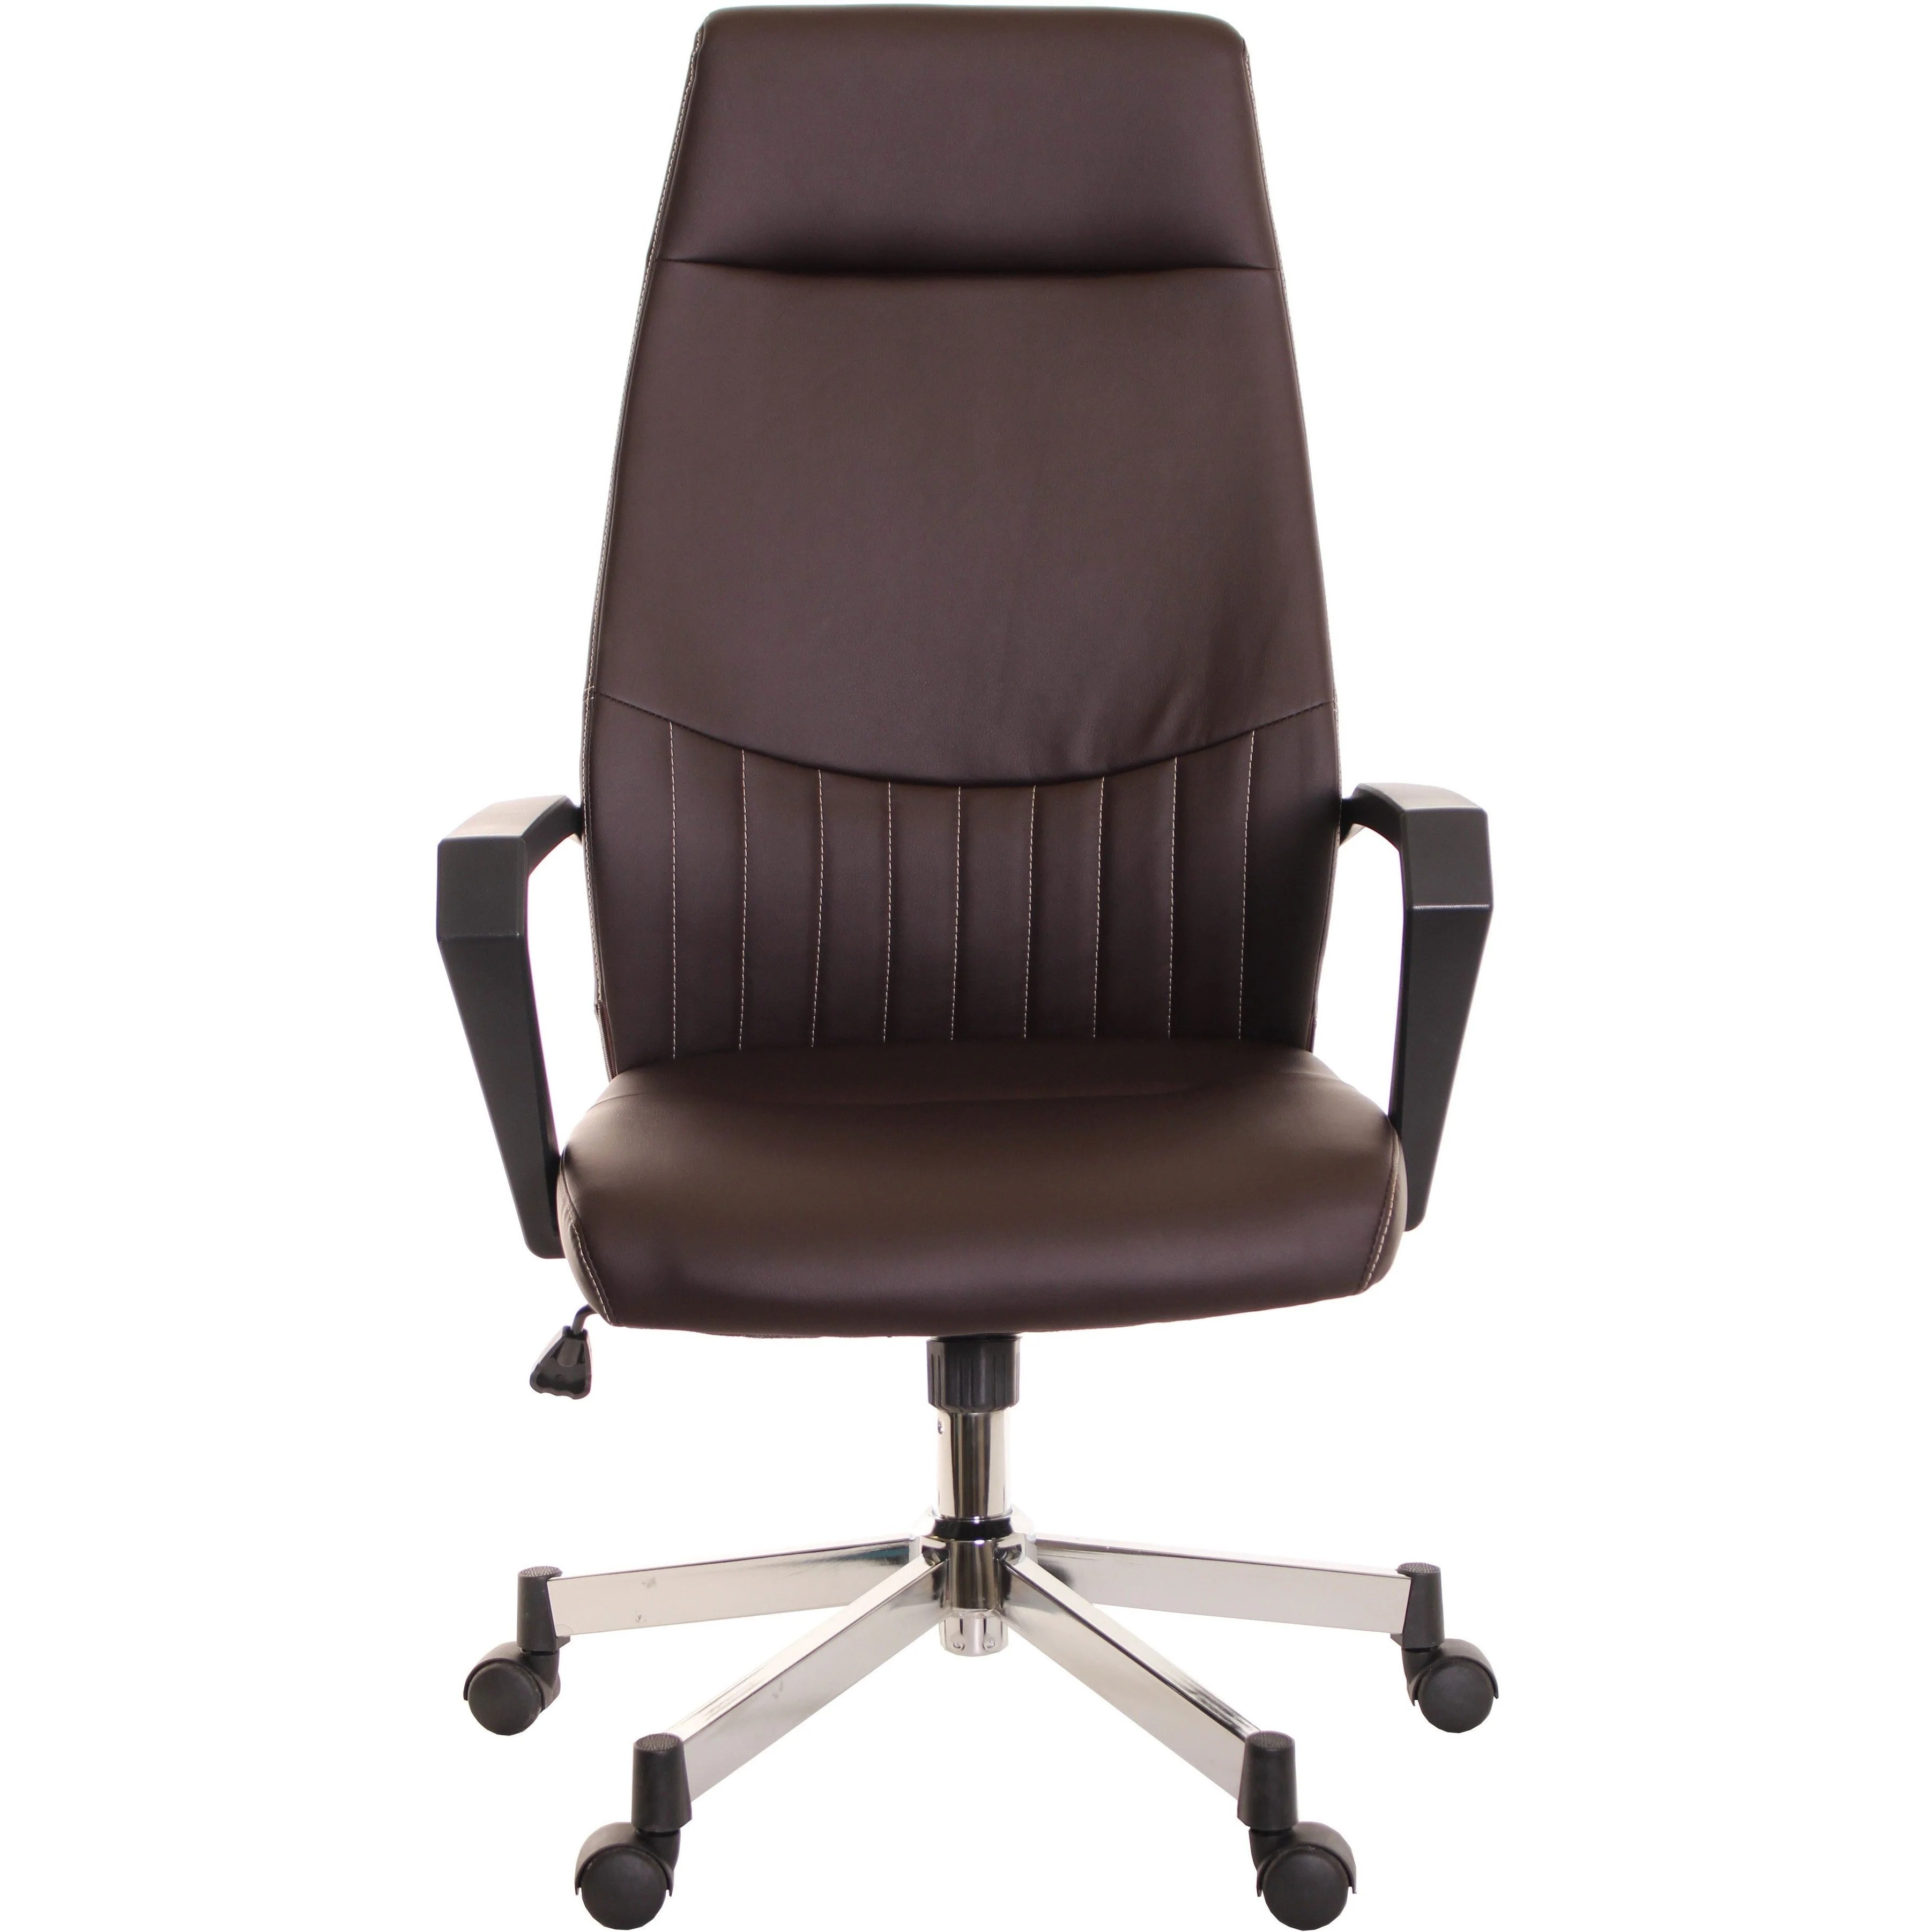 ergonomic chair criteria best big and tall office reviews high back leather task brown by timeoffice time